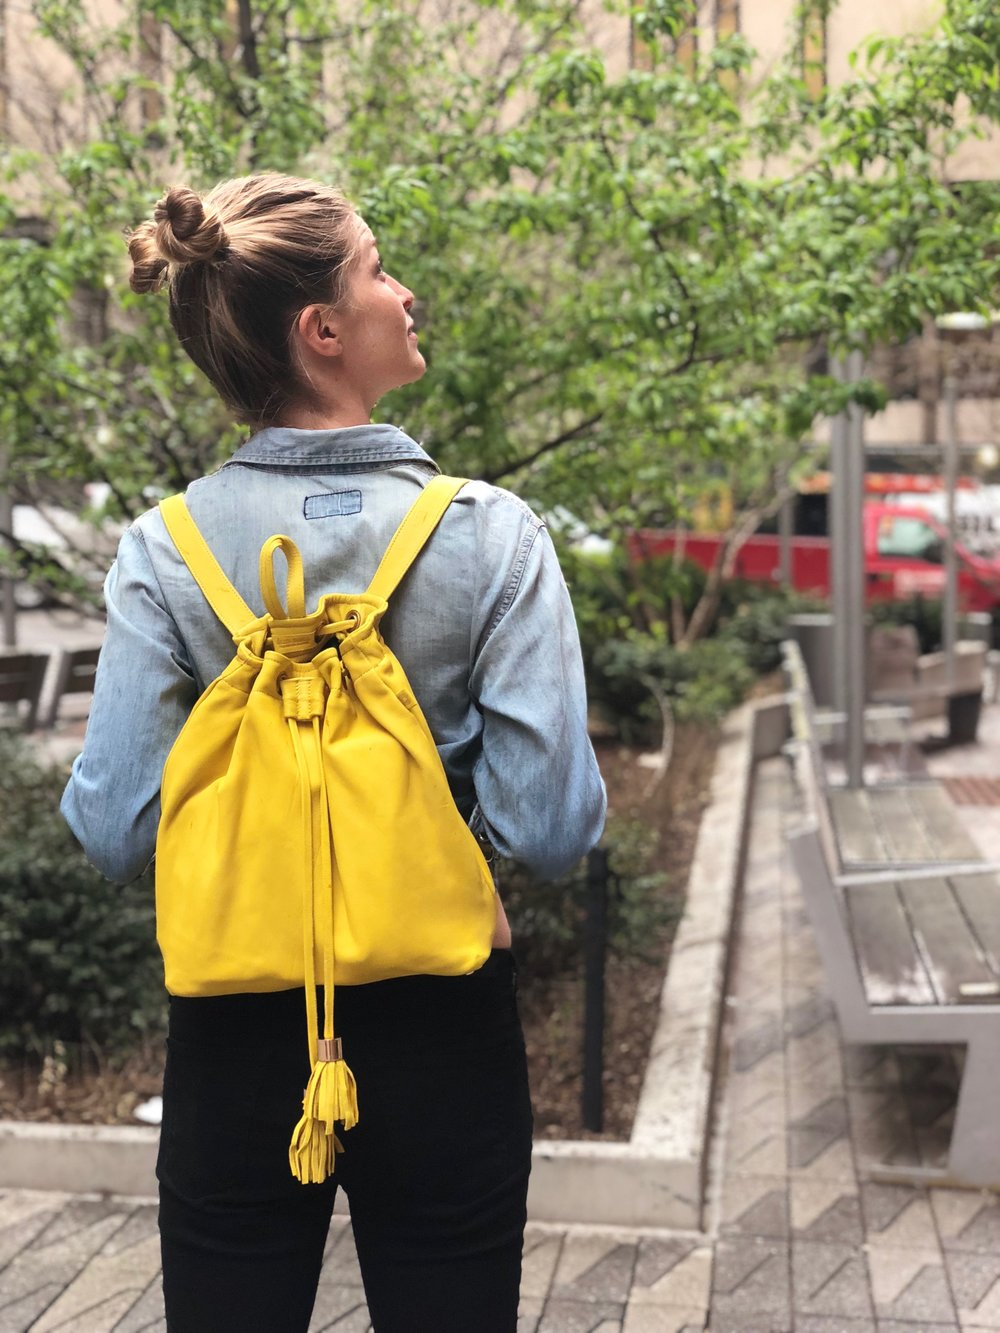 Use my code HEIDE15 to get your Michel Backpack at 15% off - LIMITED QUANTITY AVAILABLE FOR PREORDER, SHIPPING MAY 7, 2018!